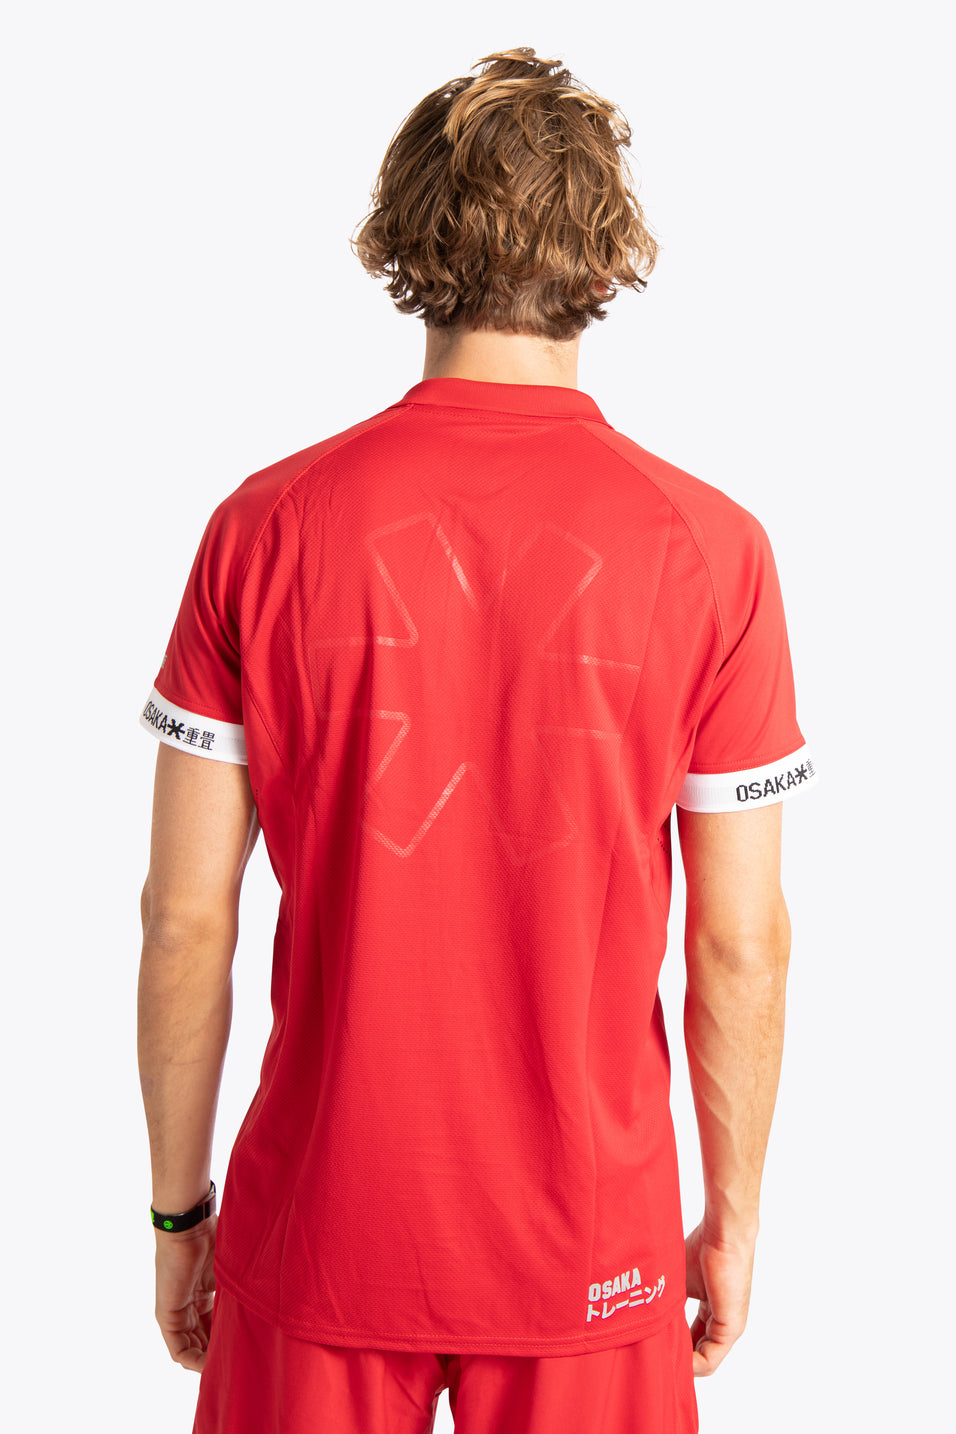 Osaka field hockey jersey red